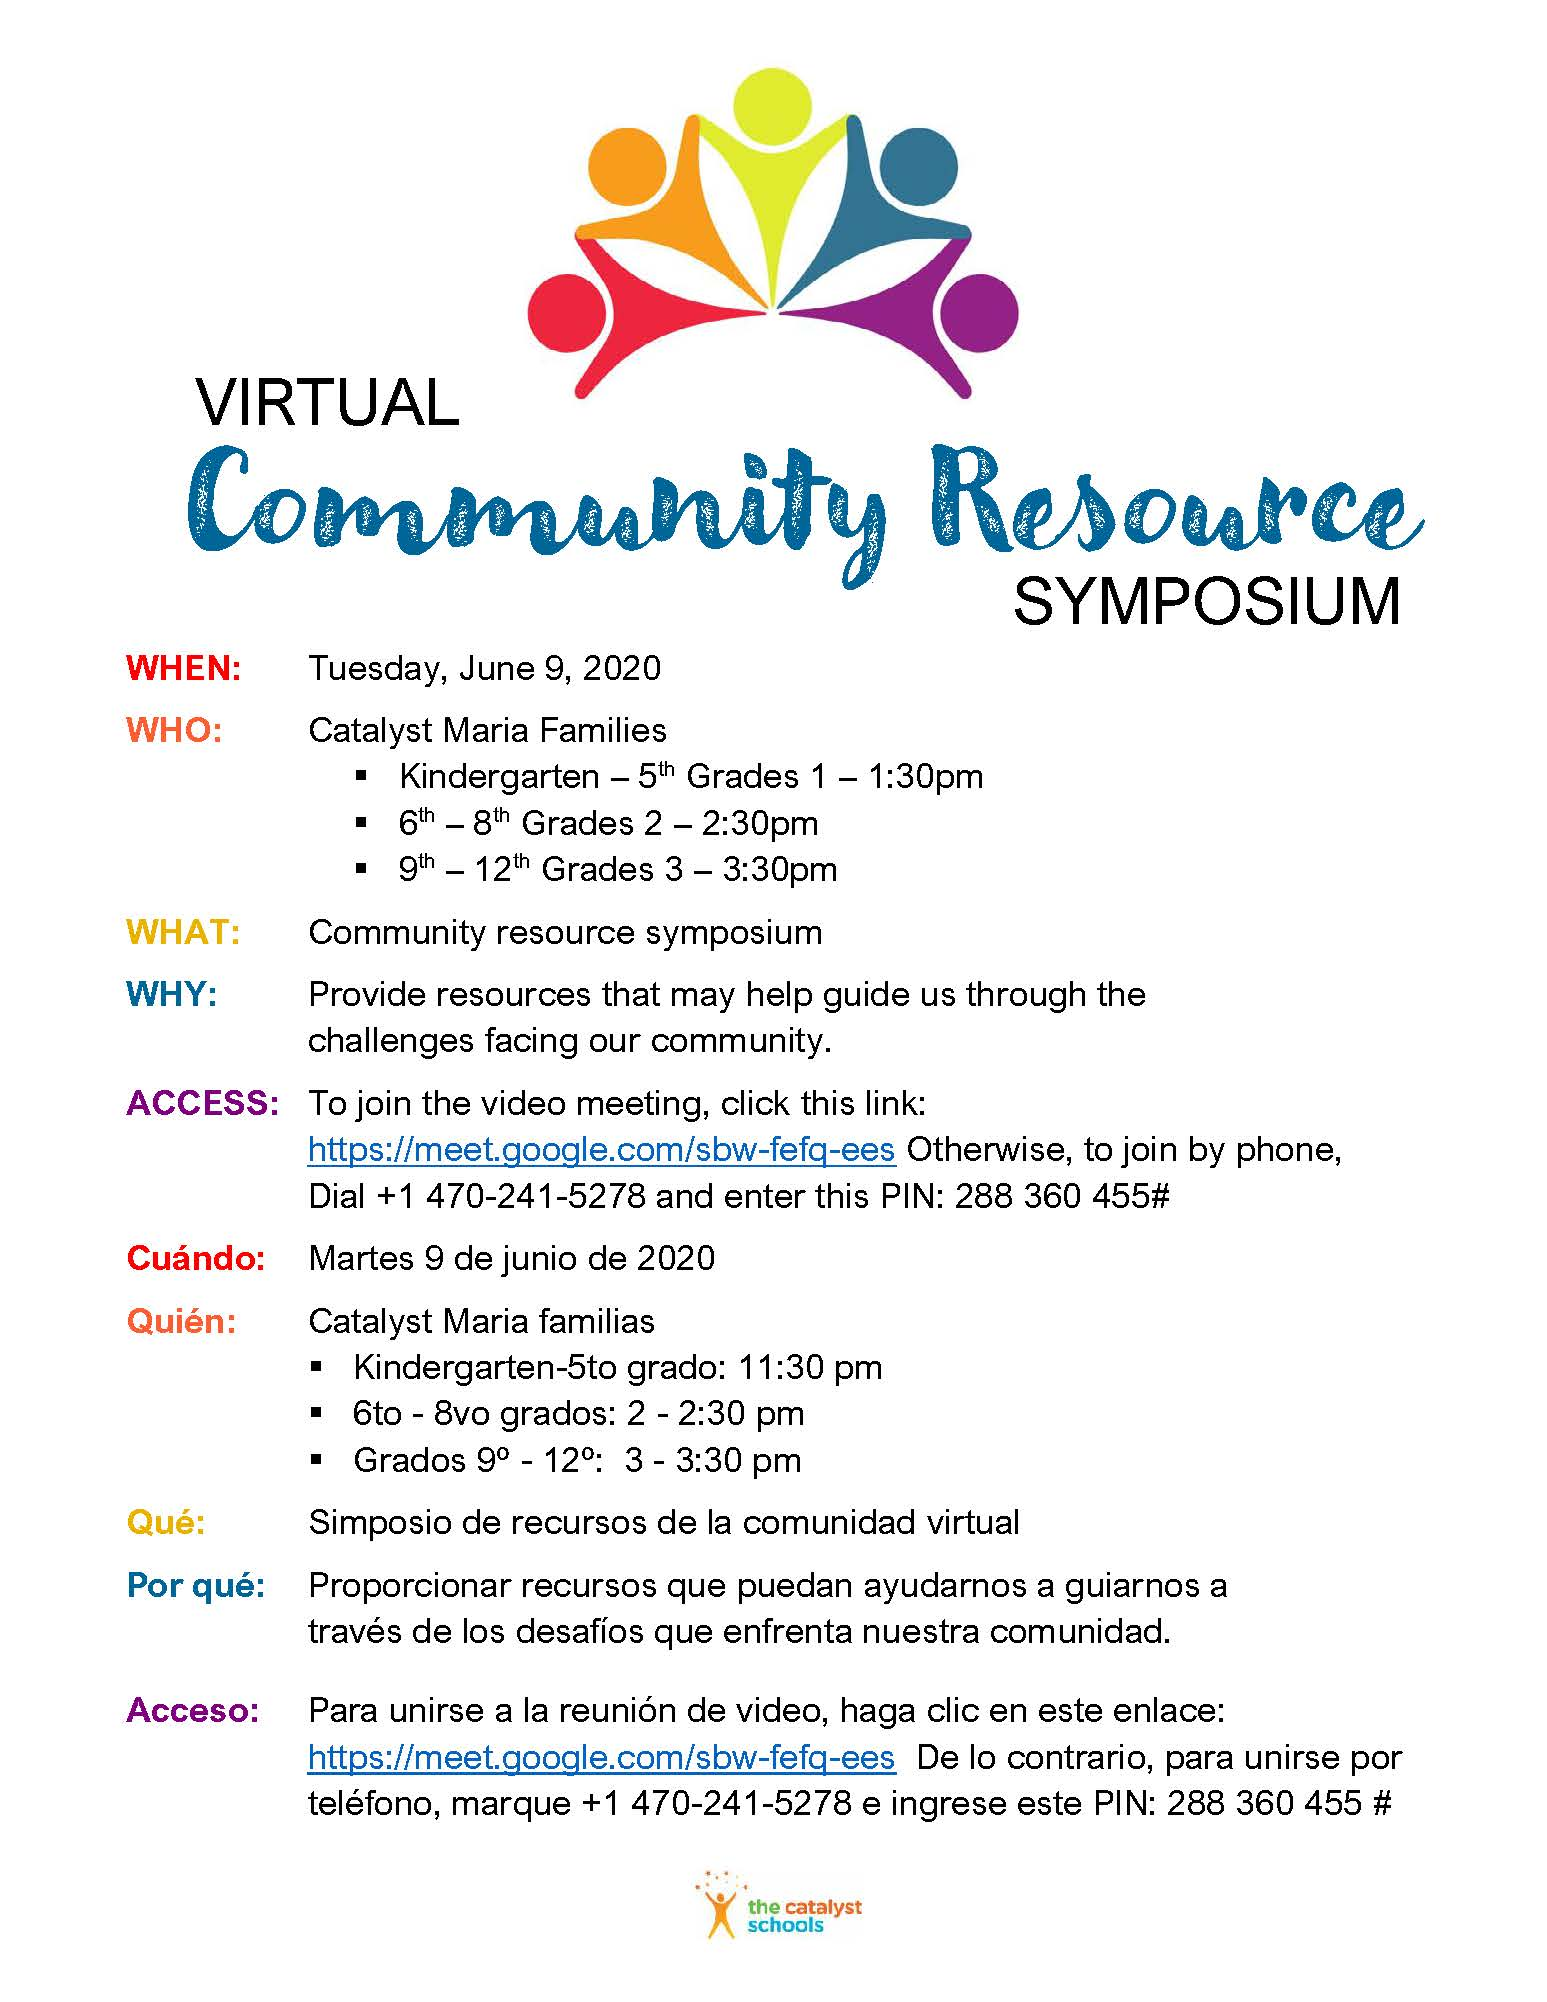 Virtual Community Resource Symposium